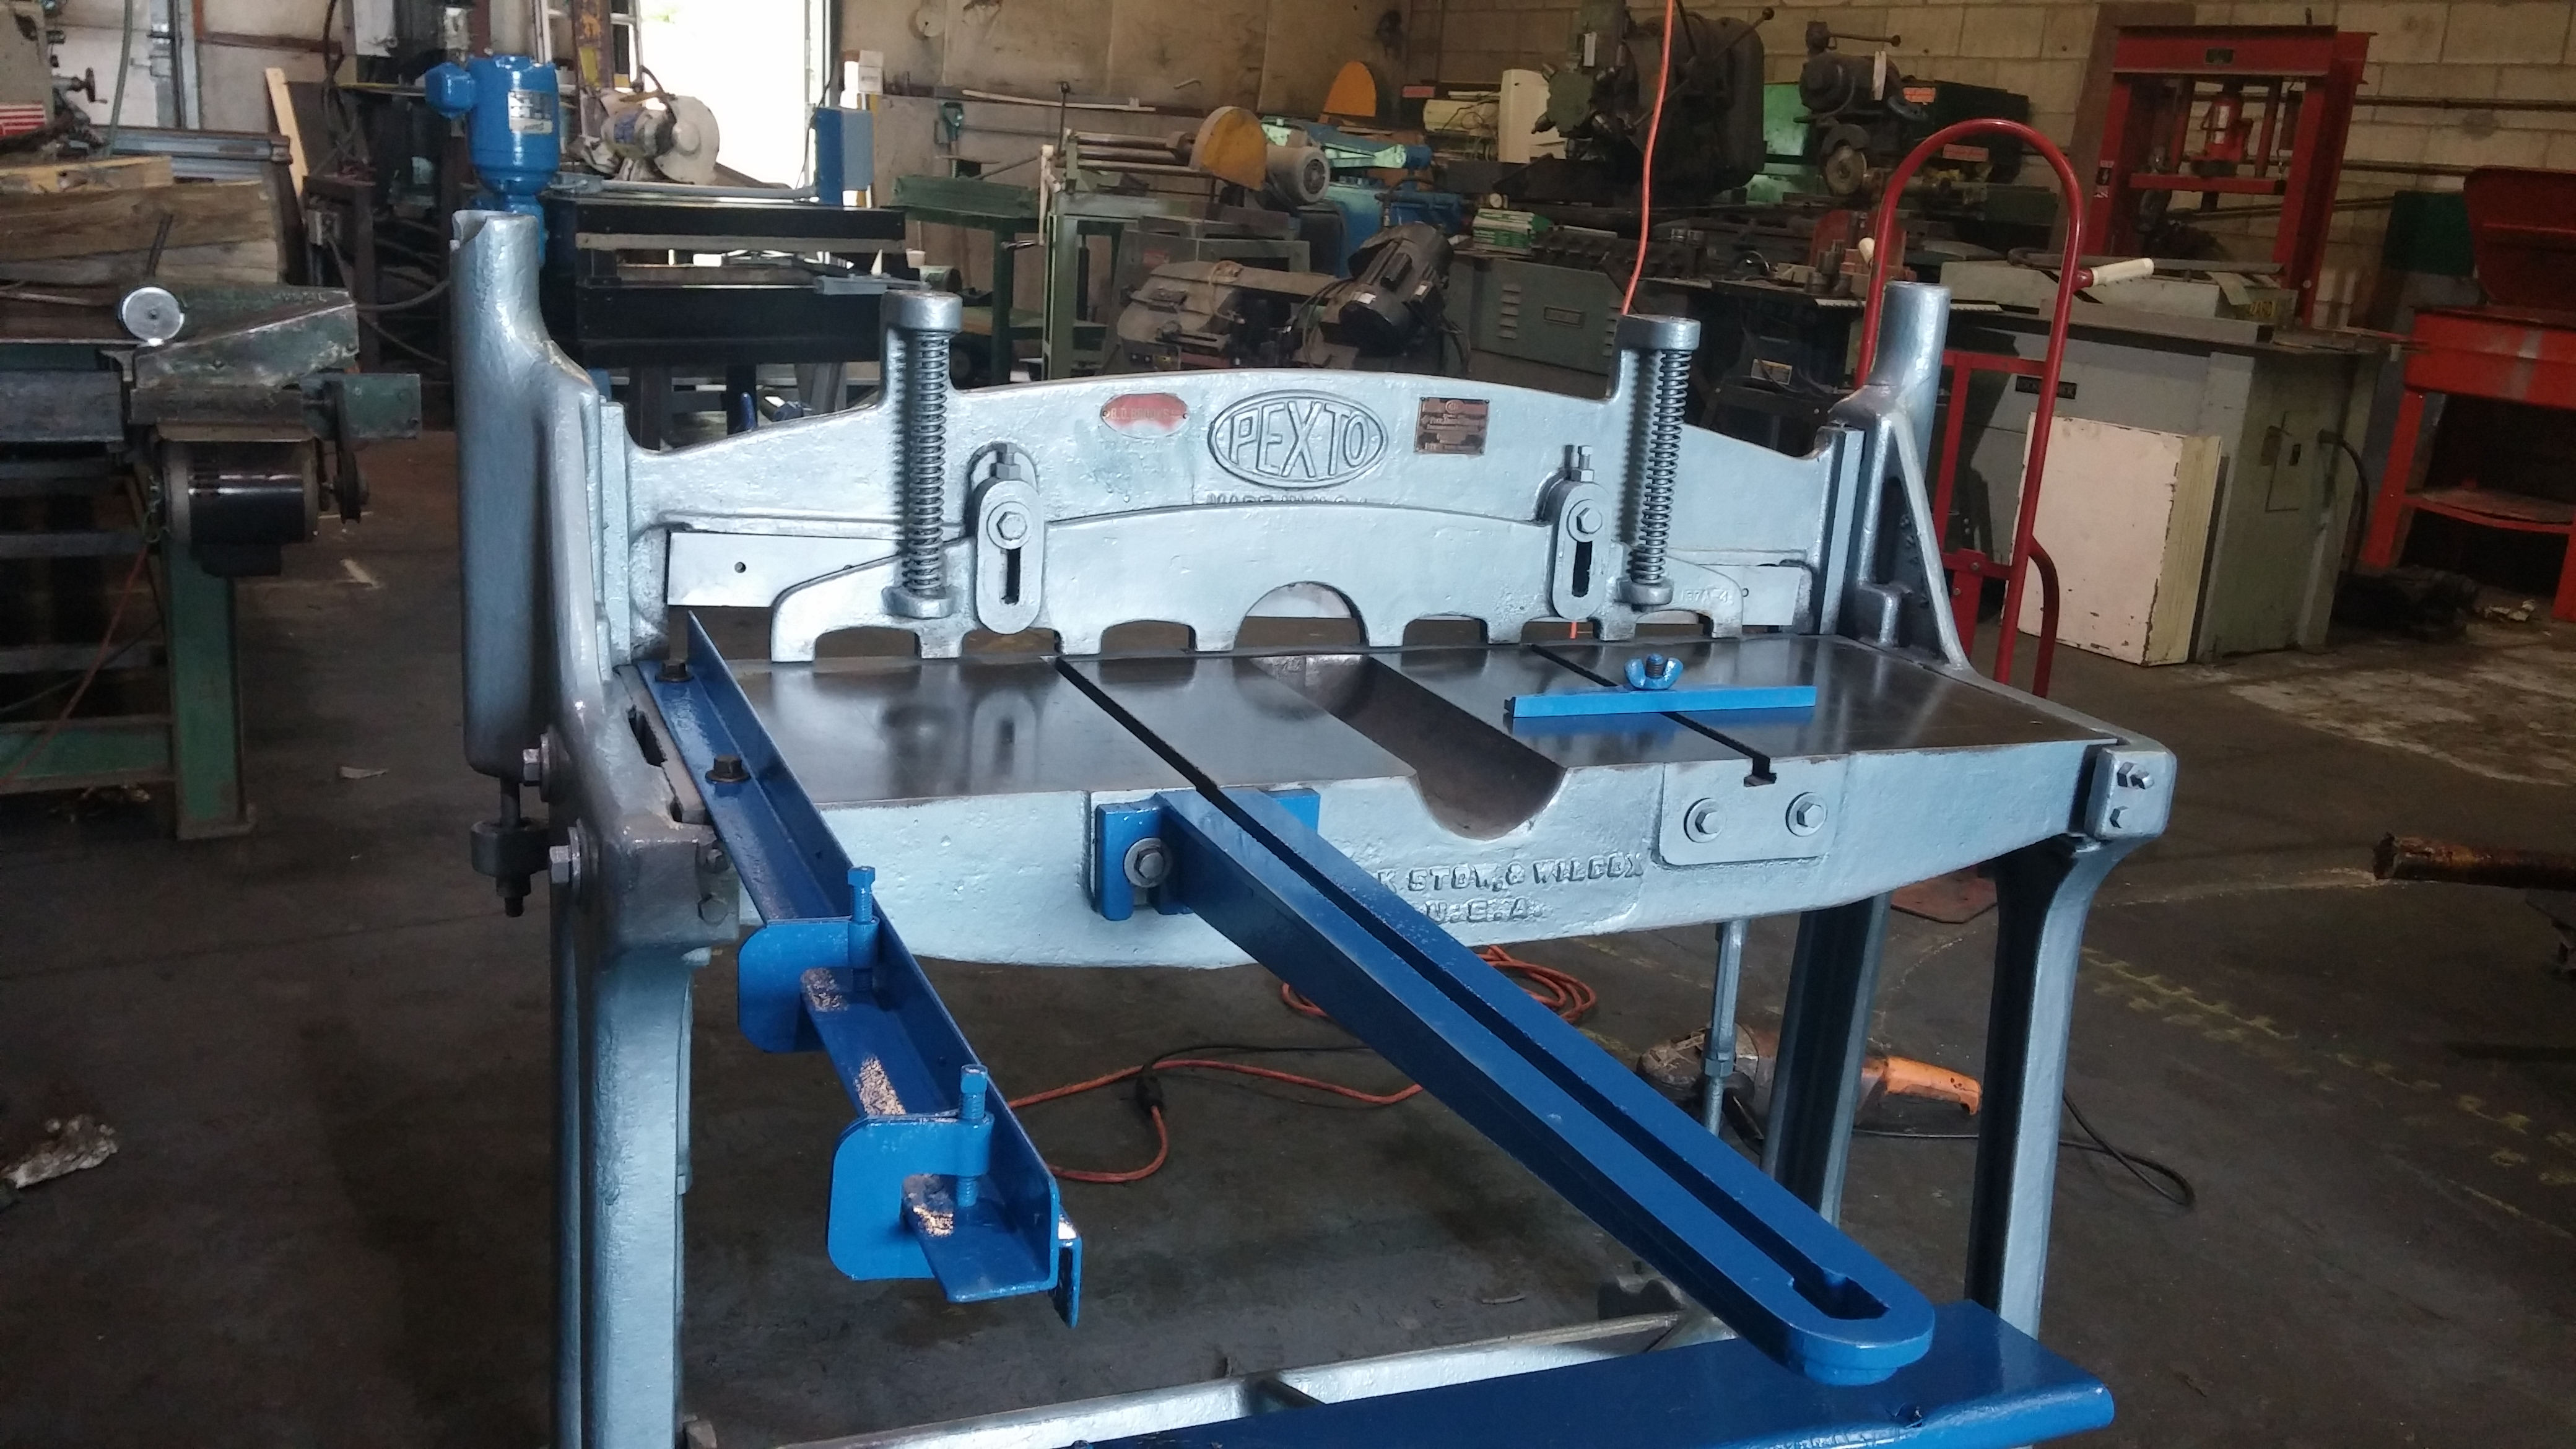 Pexto Shear 36 Quot With Back Guage And Material Supports